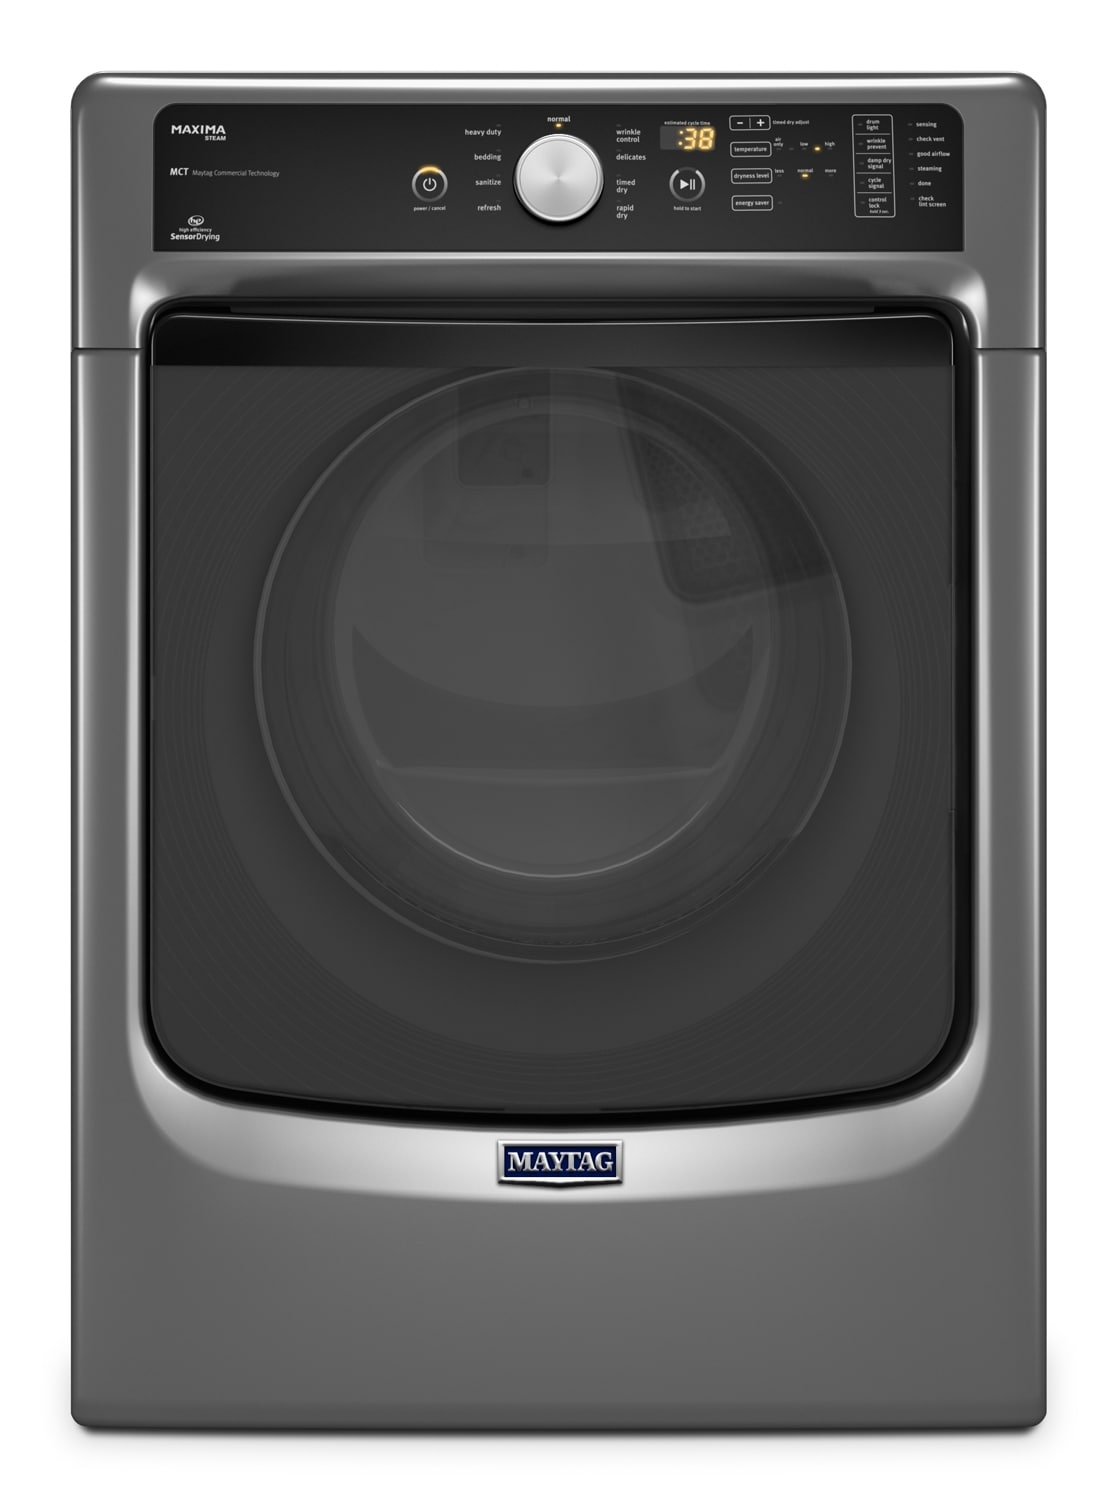 Washers and Dryers - Maytag Metallic Slate Gas Dryer (7.4 Cu. Ft.) - MGD5100DC